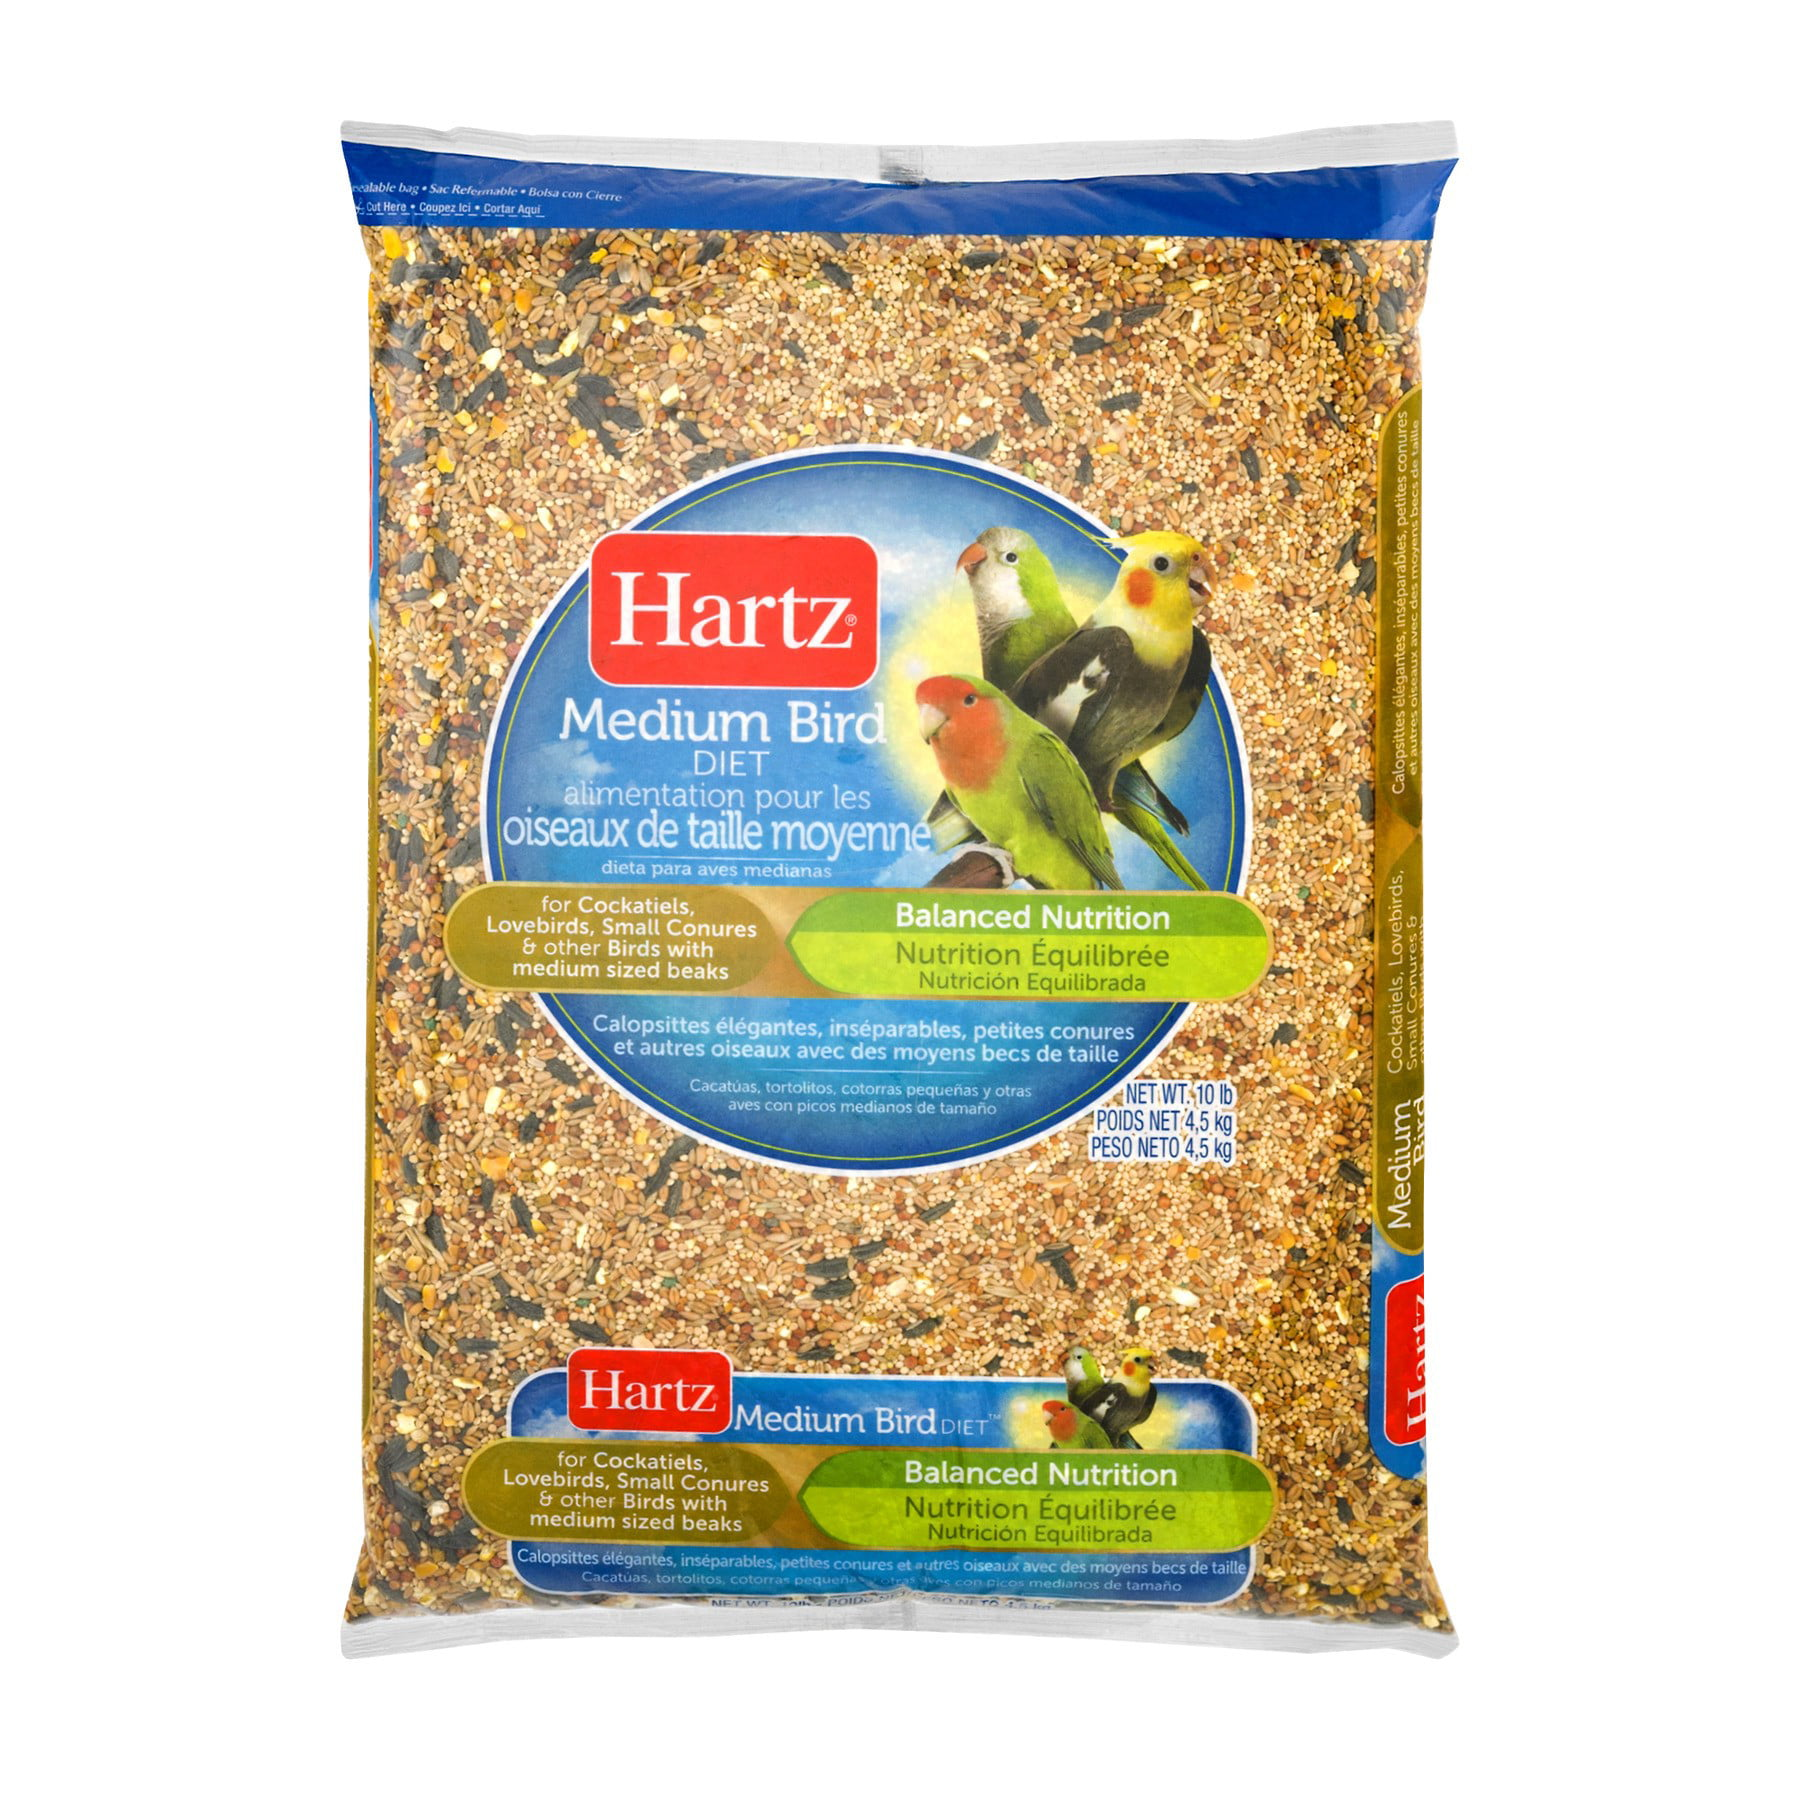 Hartz Medium Bird Food, 10.0 LB by The Hartz Mountain Corporation